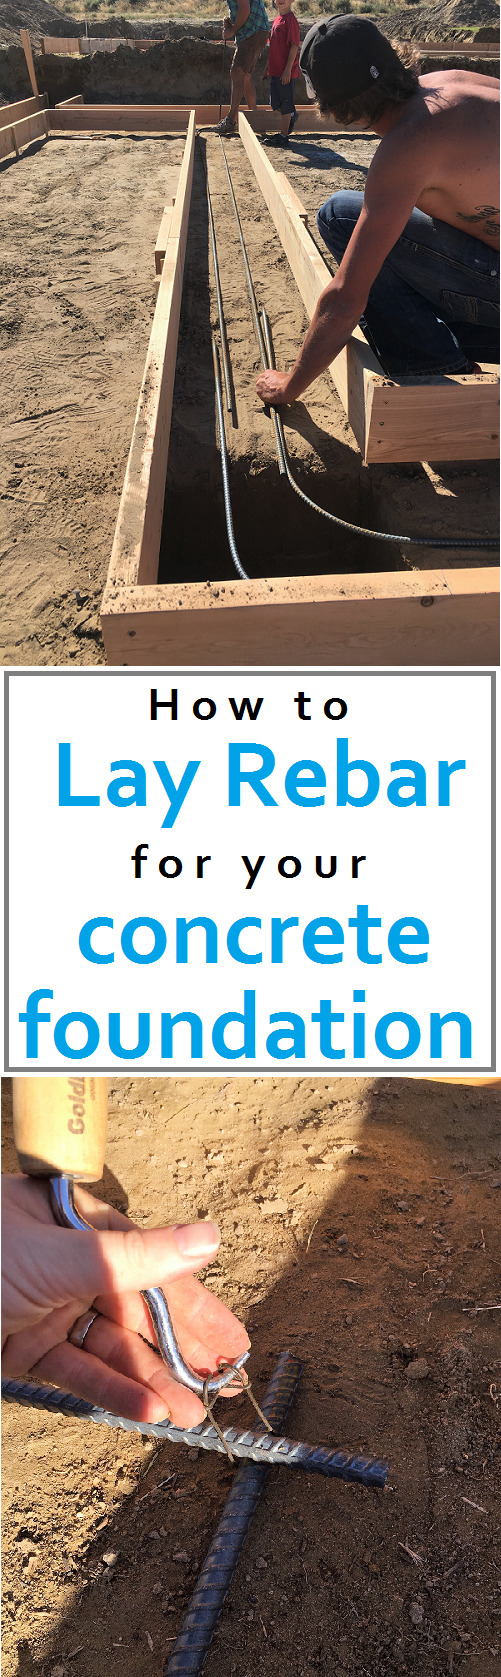 How To Lay Rebar For Your Concrete Foundation Step By Instructions Cost Outline Tips Build Own House